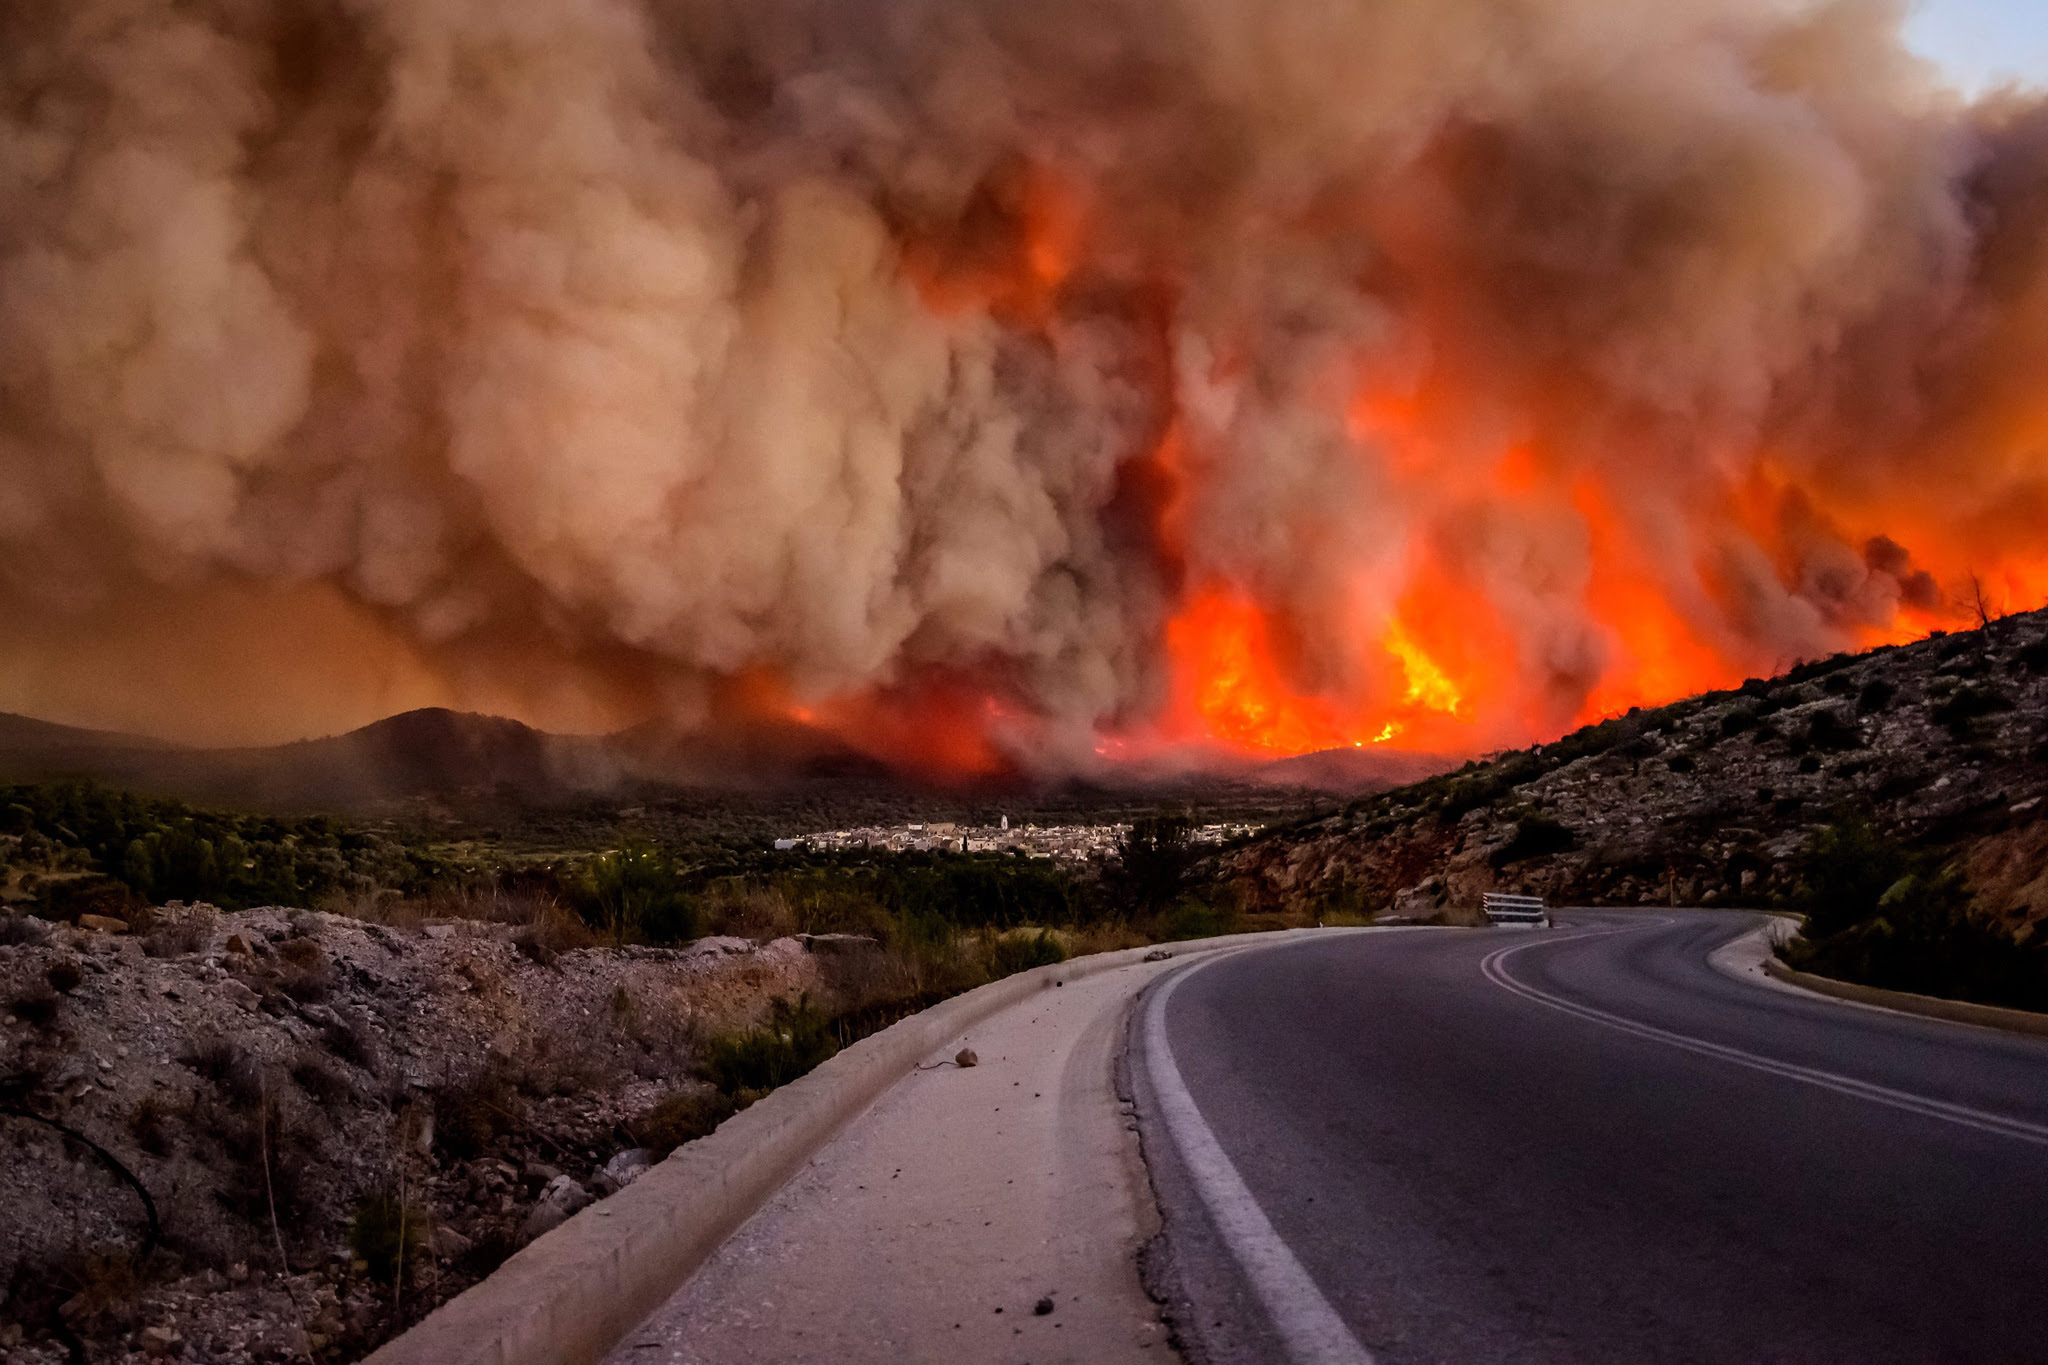 A picture made available on 26 July 2016 shows dense smoke over Lithi village  during a wildfire on Chios island, Greece, 25 July 2016. The huge wildfire that broke out early 25 July 2016, on the island of Chios which has burned 3,500 hectares of forest and farm land, set under control. Over 90 percent of the mastic trees at the villages of Lithi, Elata and Vessa were destroyed while a large number of mastic trees were burned at the villages of Mesta, Armolia and Pyrgi.  EPA/KOSTAS KOYRGIAS